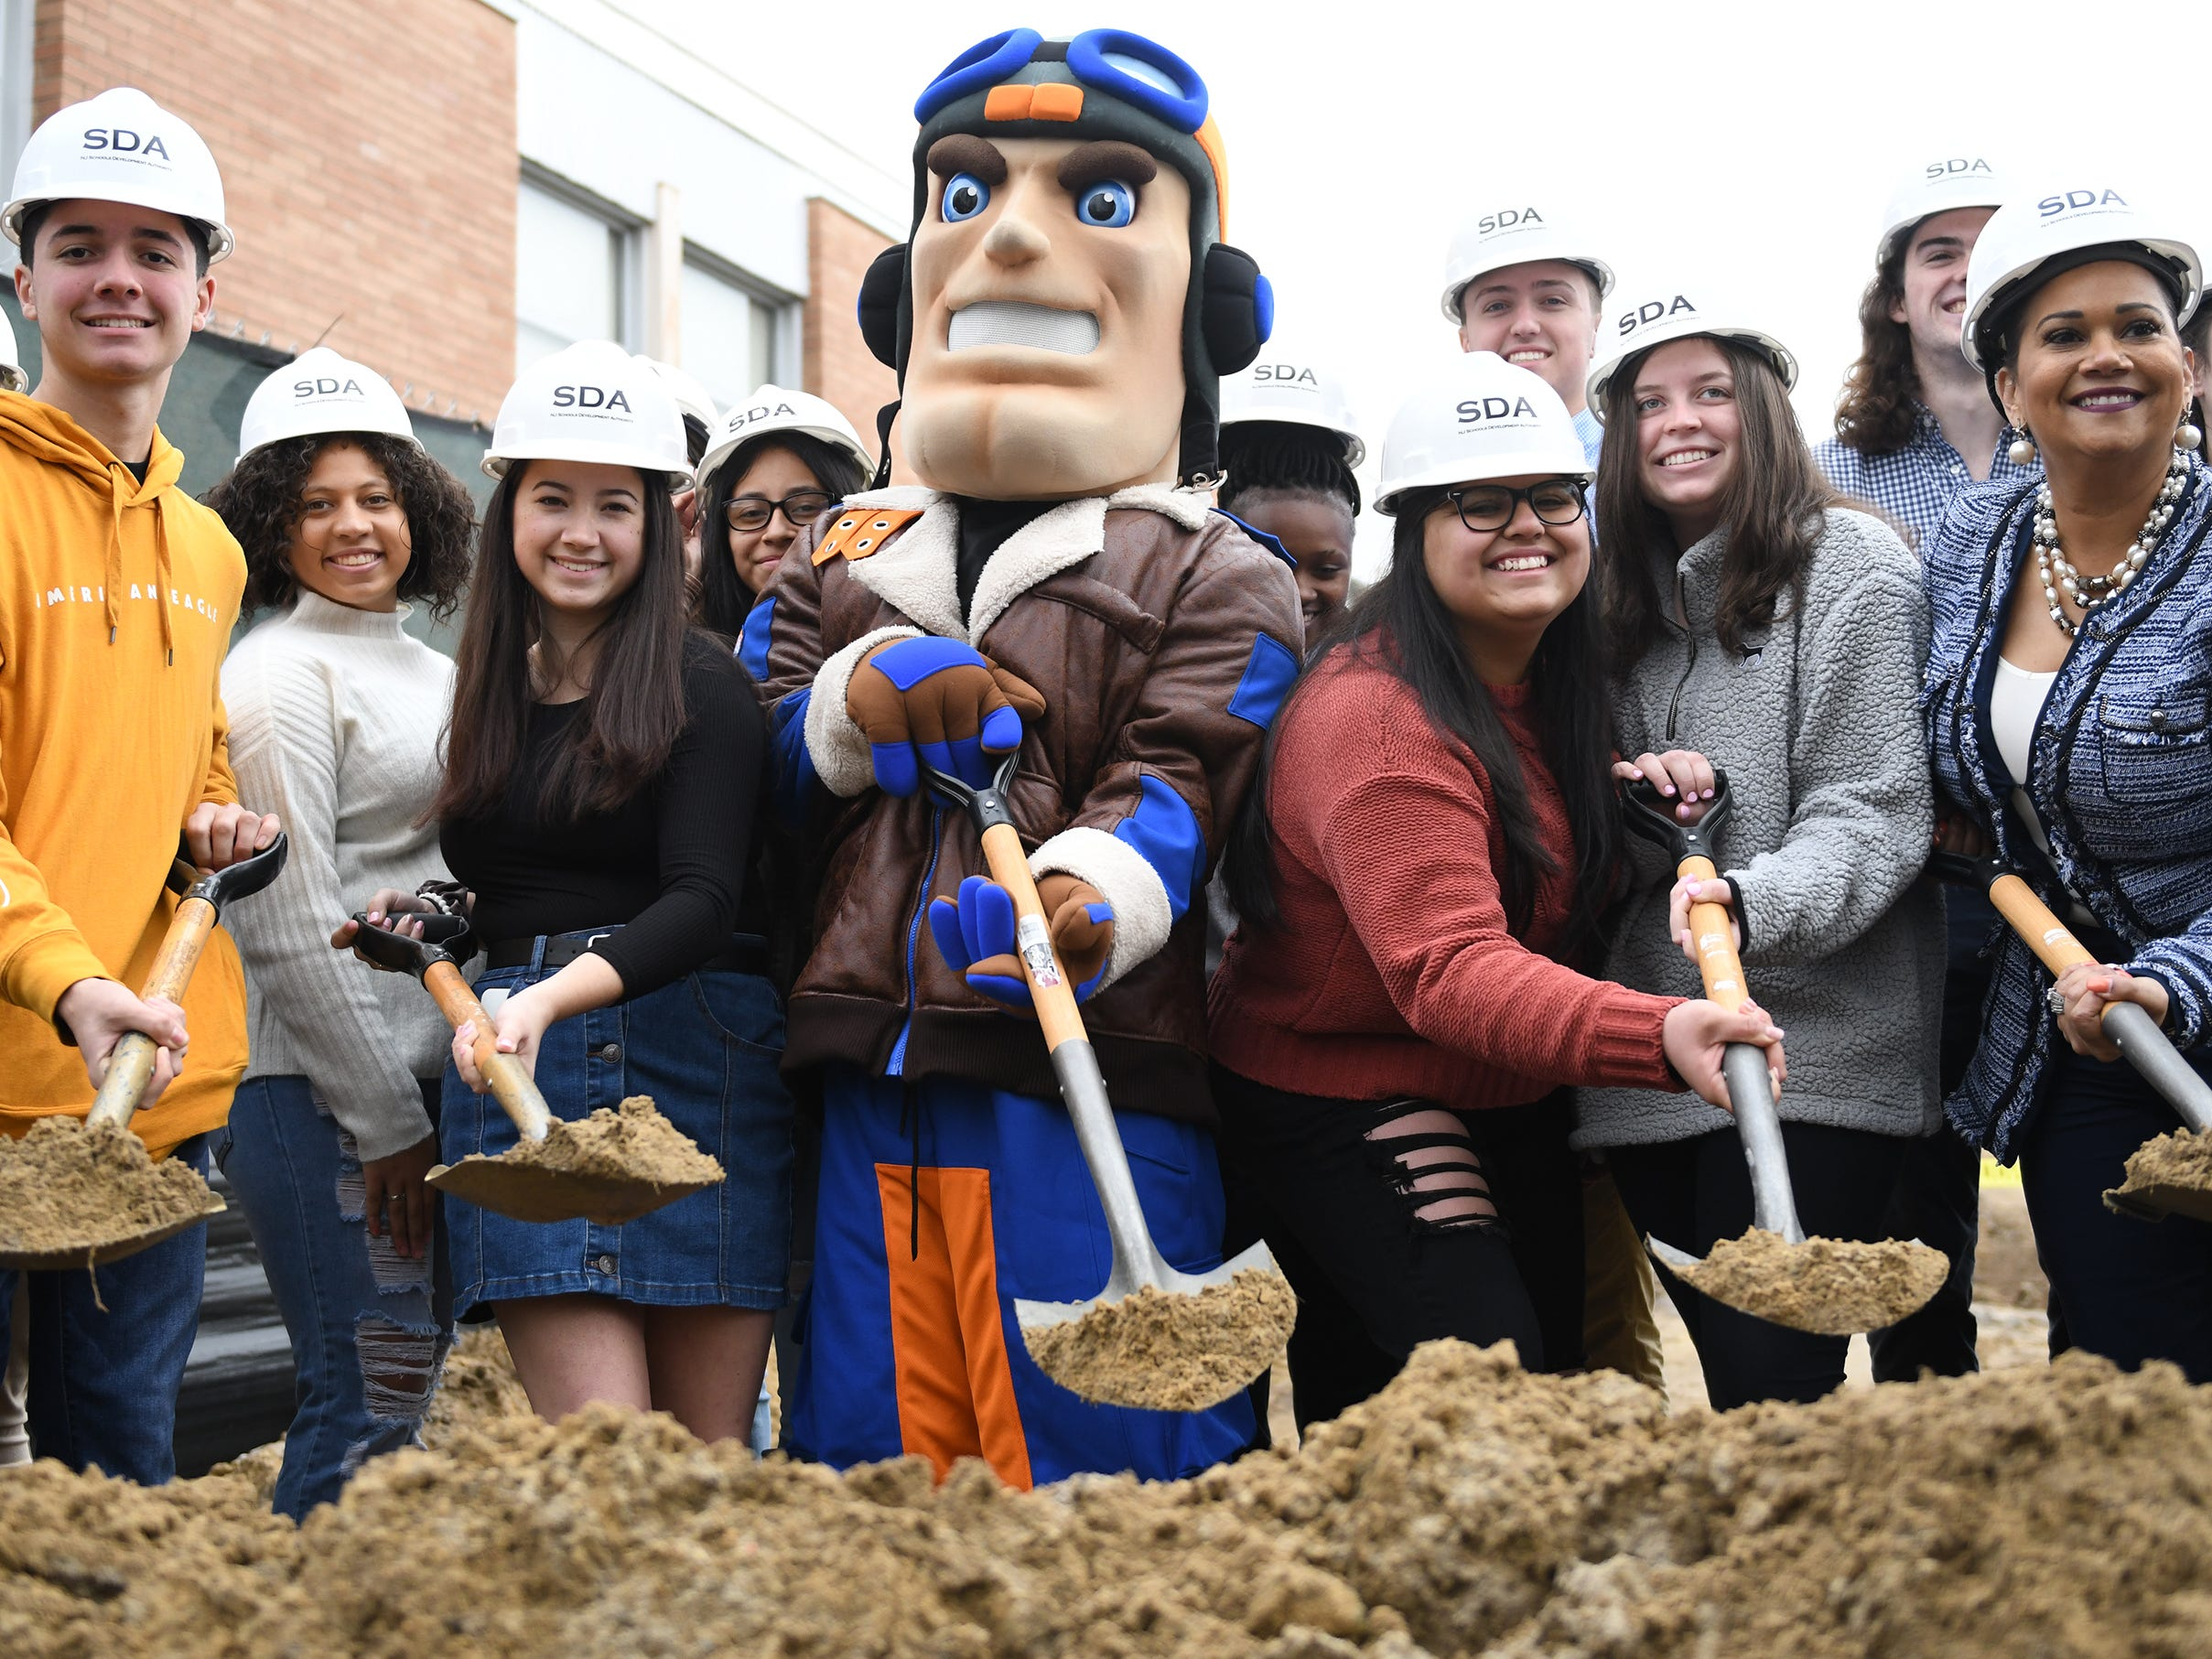 The SDA, joined by students, the school mascot Maverick, legislative representatives and school officials, hosted a groundbreaking event to kick off construction of the addition to Millville High School on Thursday, Feb. 7, 2019.